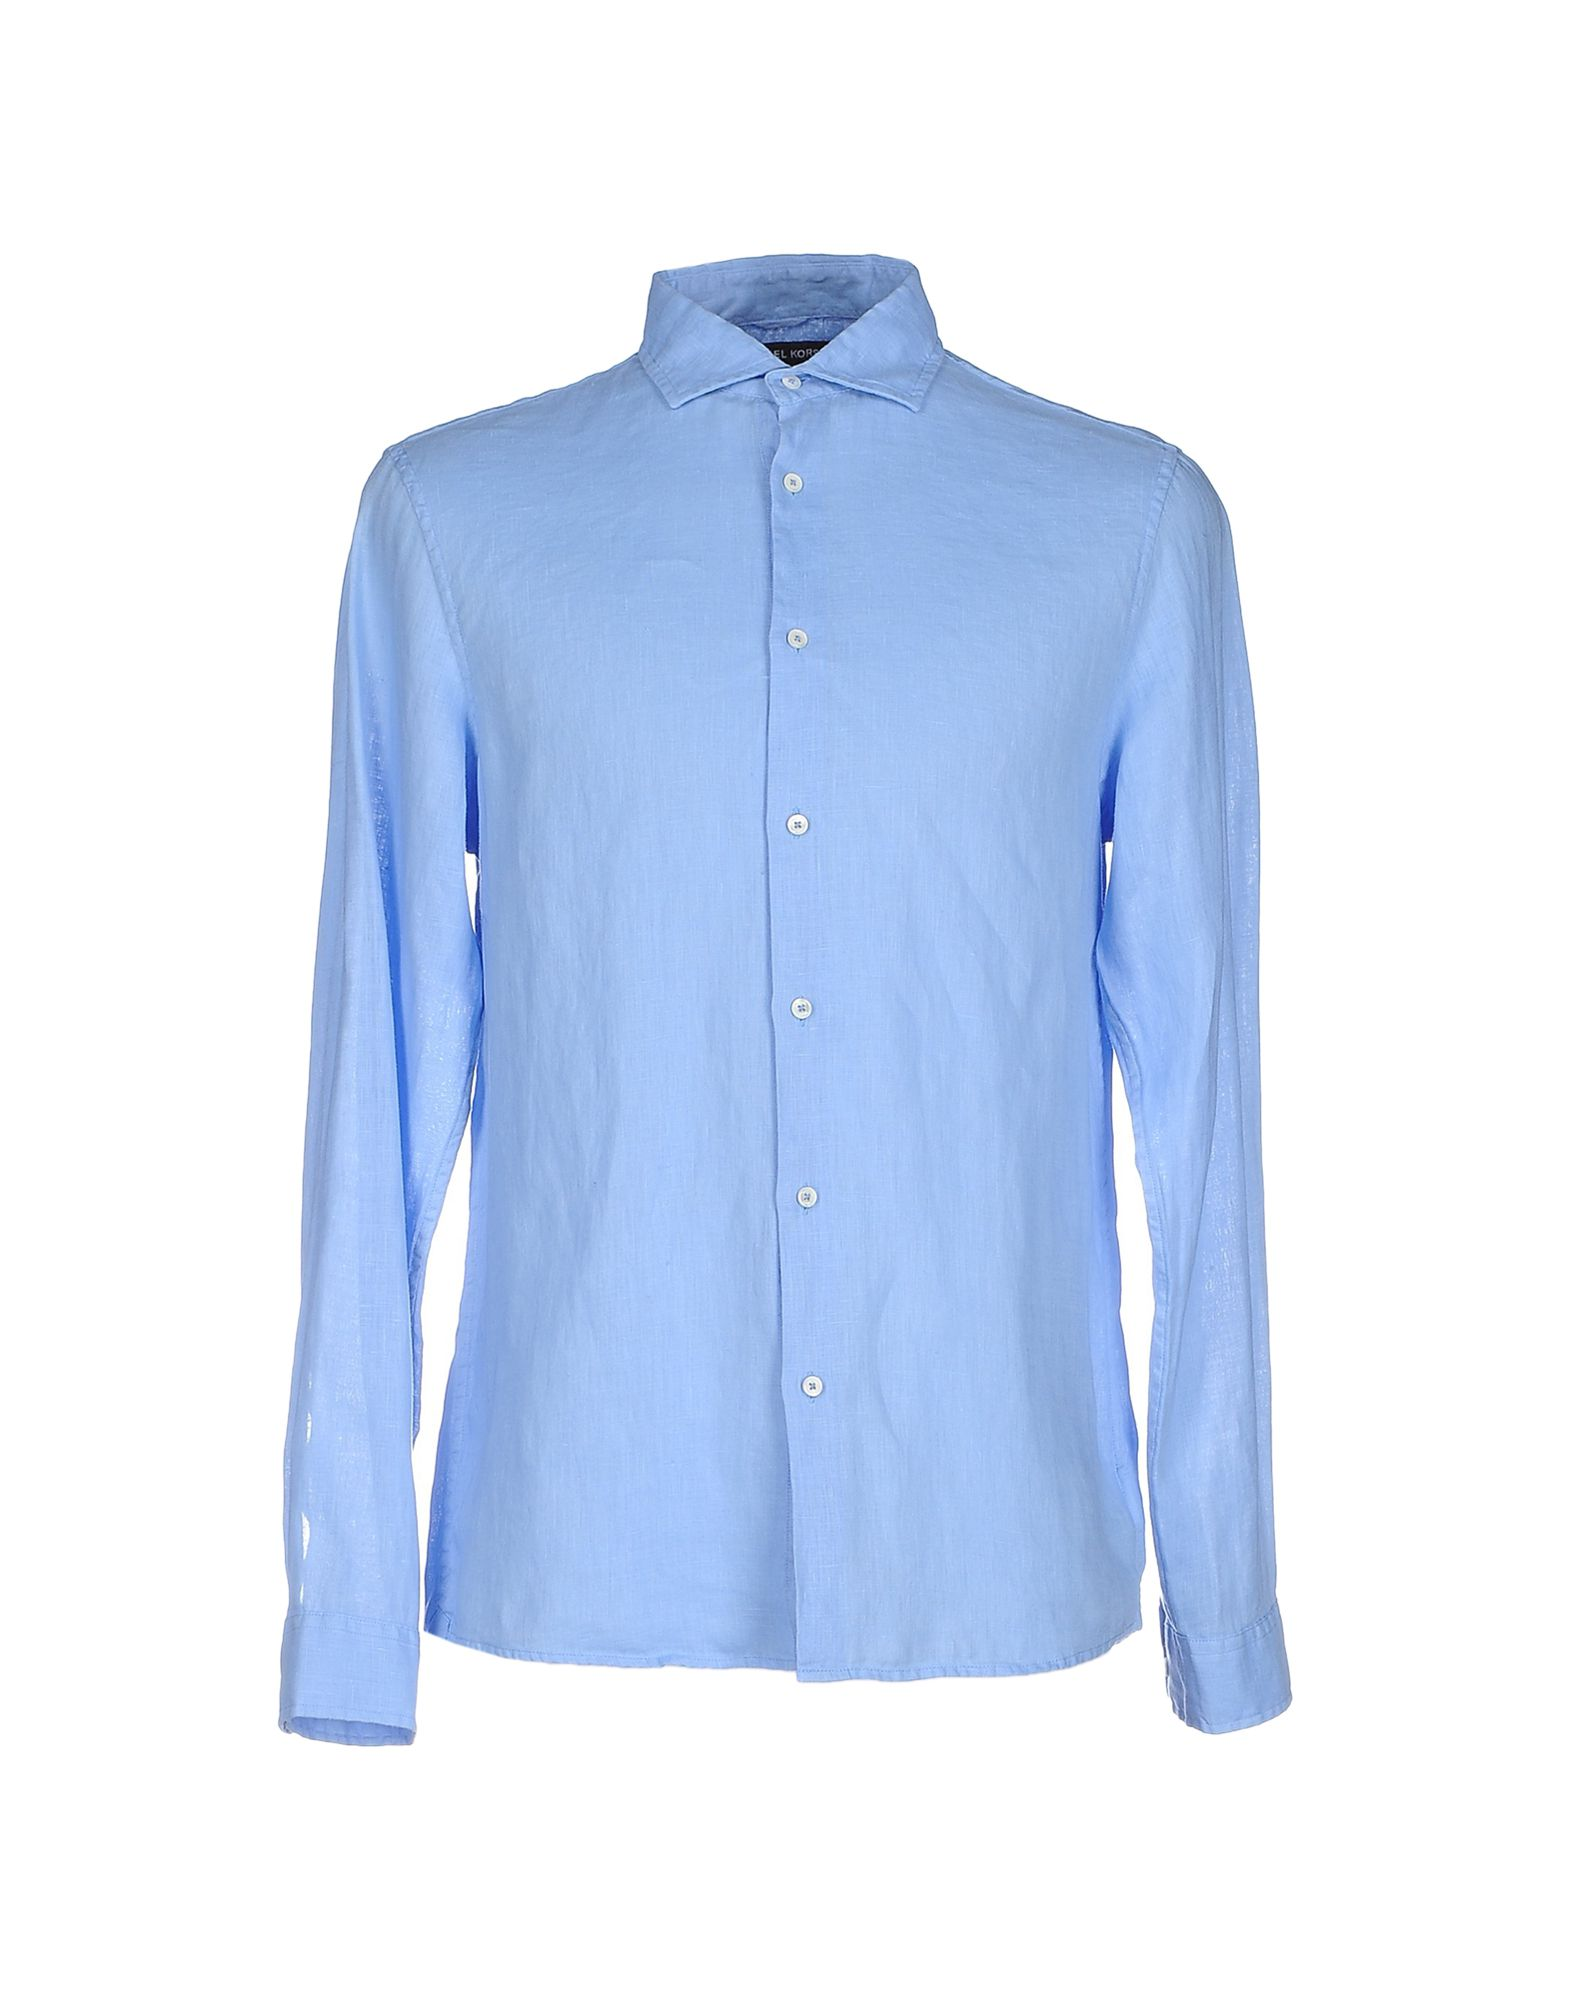 michael kors male michael kors shirts